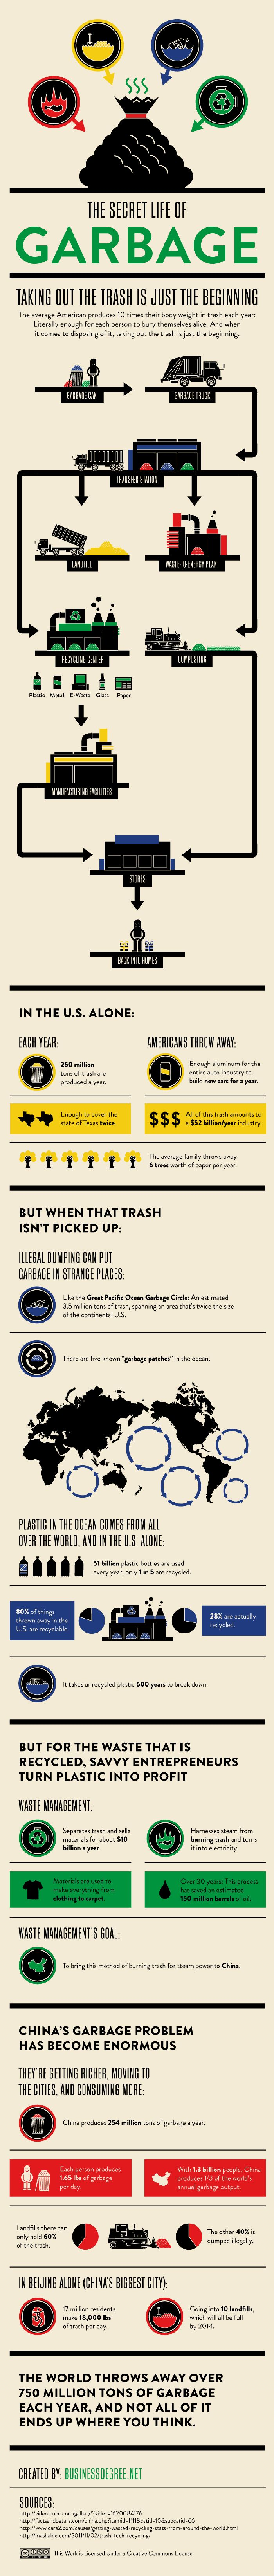 The Secret Life of Garbage #Infographic #environment